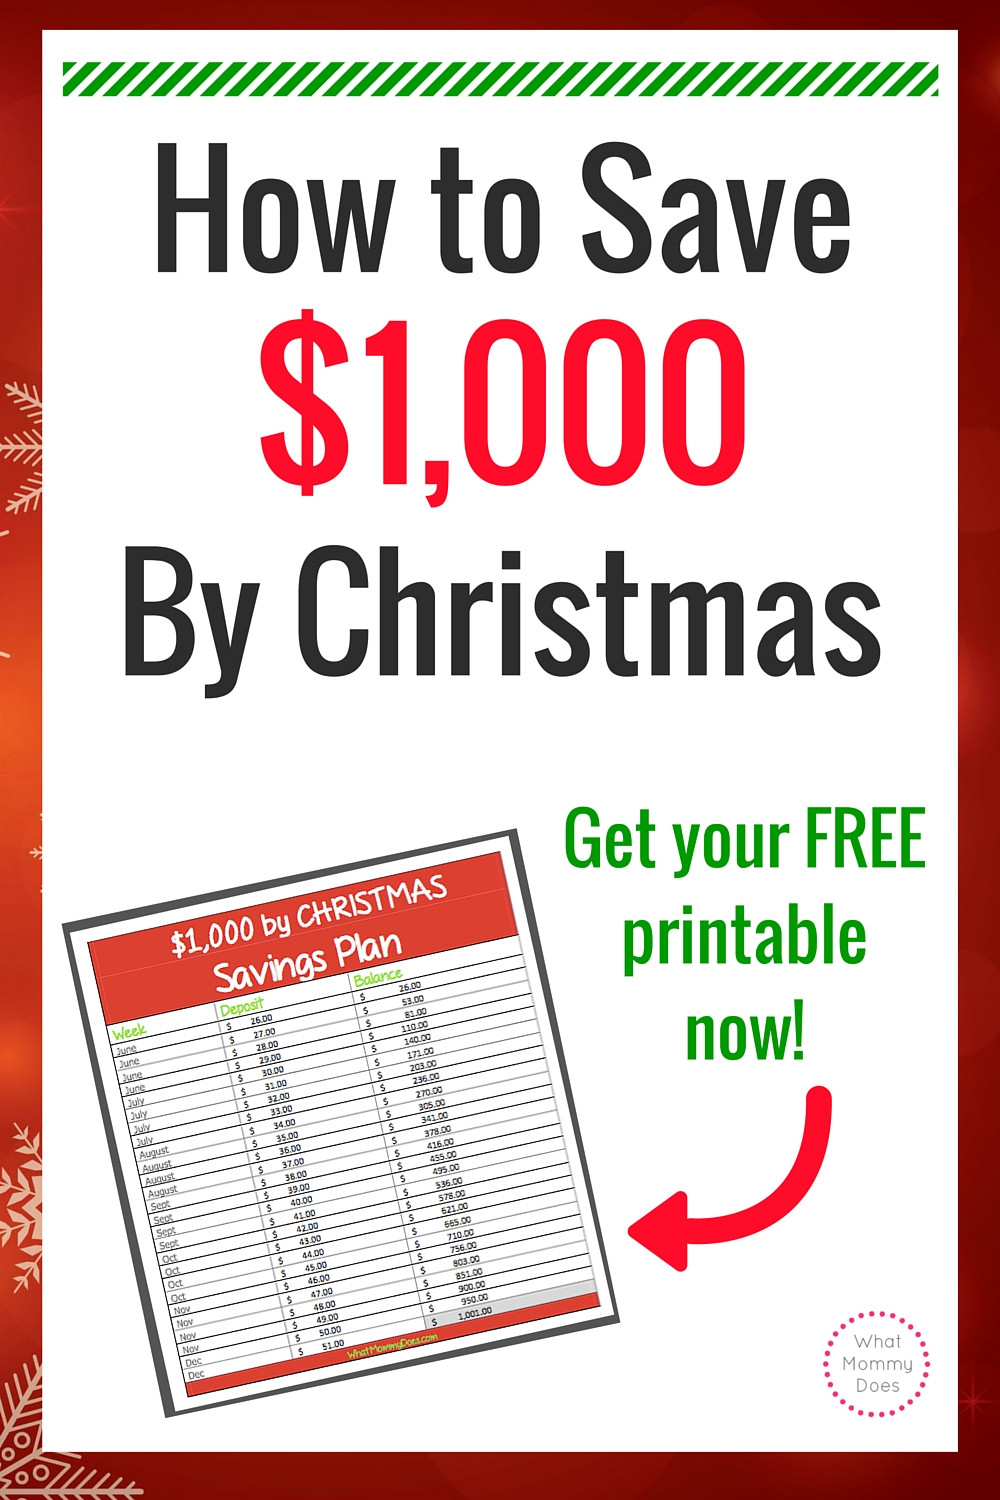 26-Week / Extra $1,000 by Christmas Savings Plan | What Mommy Does